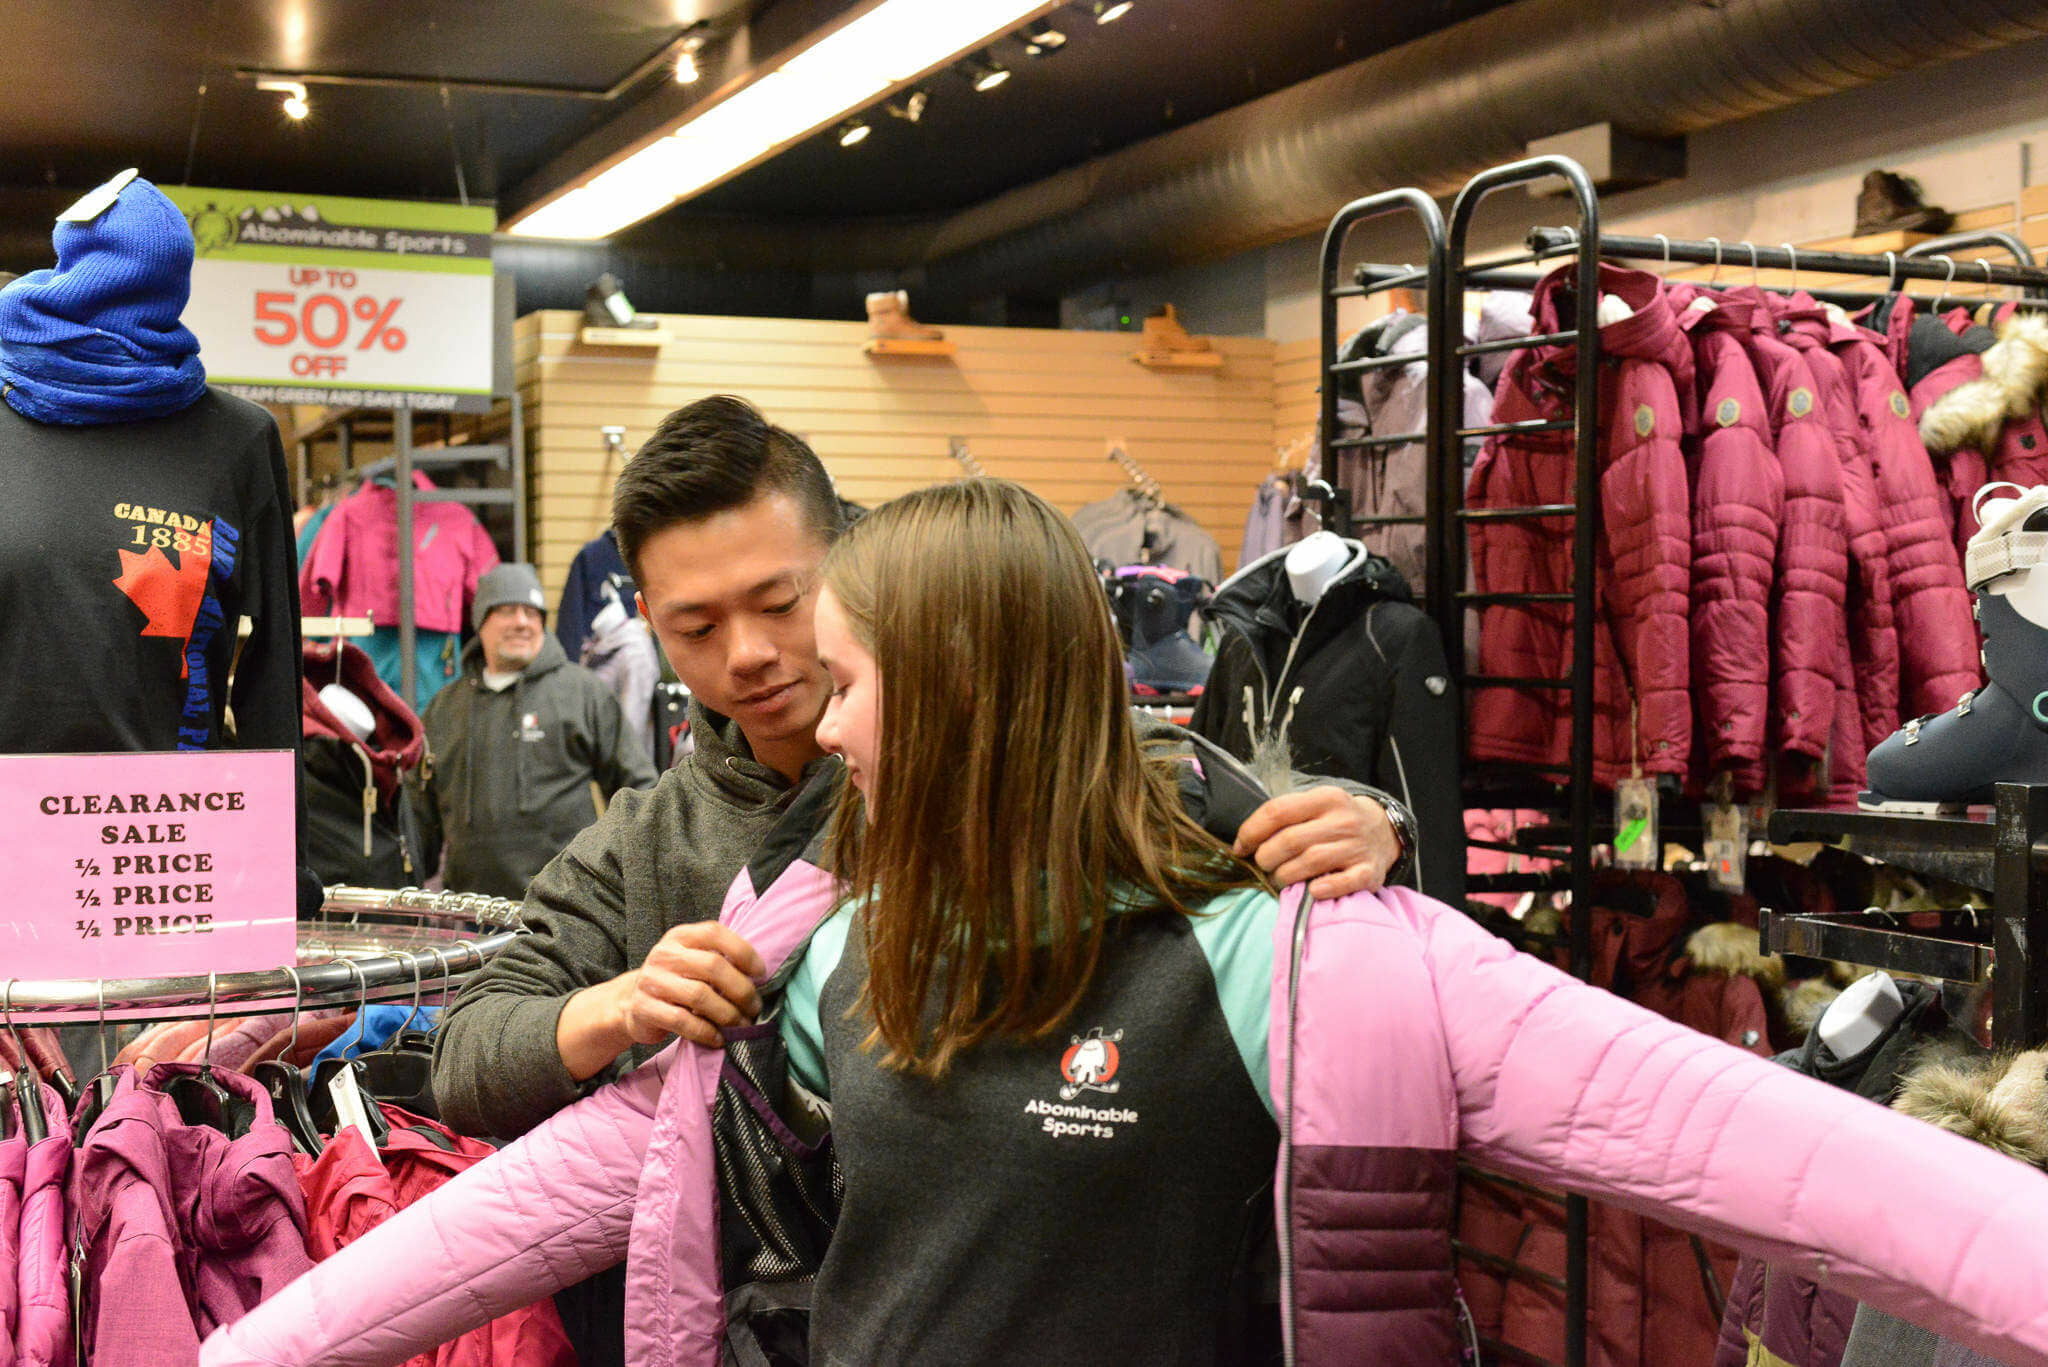 Customer buying women's ski outerwear from Abominable Sports in Banff, Alberta.